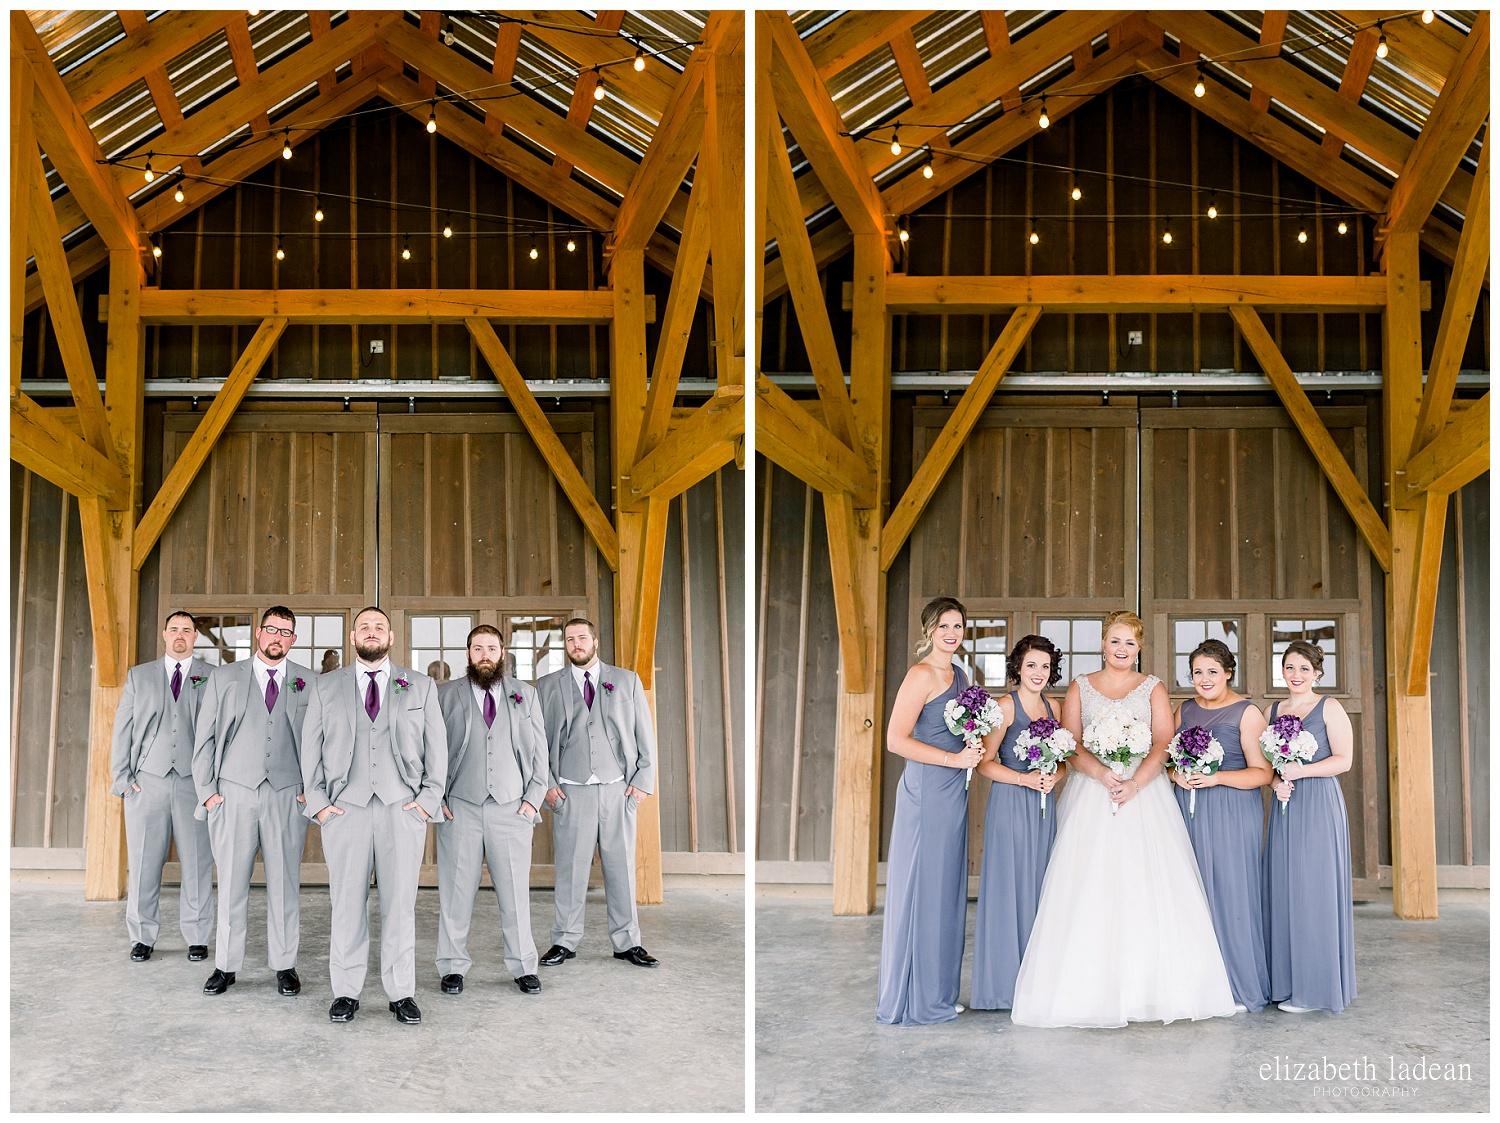 Weston-Timber-Barn-Wedding-Photography-L+A-elizabeth-ladean0photo_1868.jpg